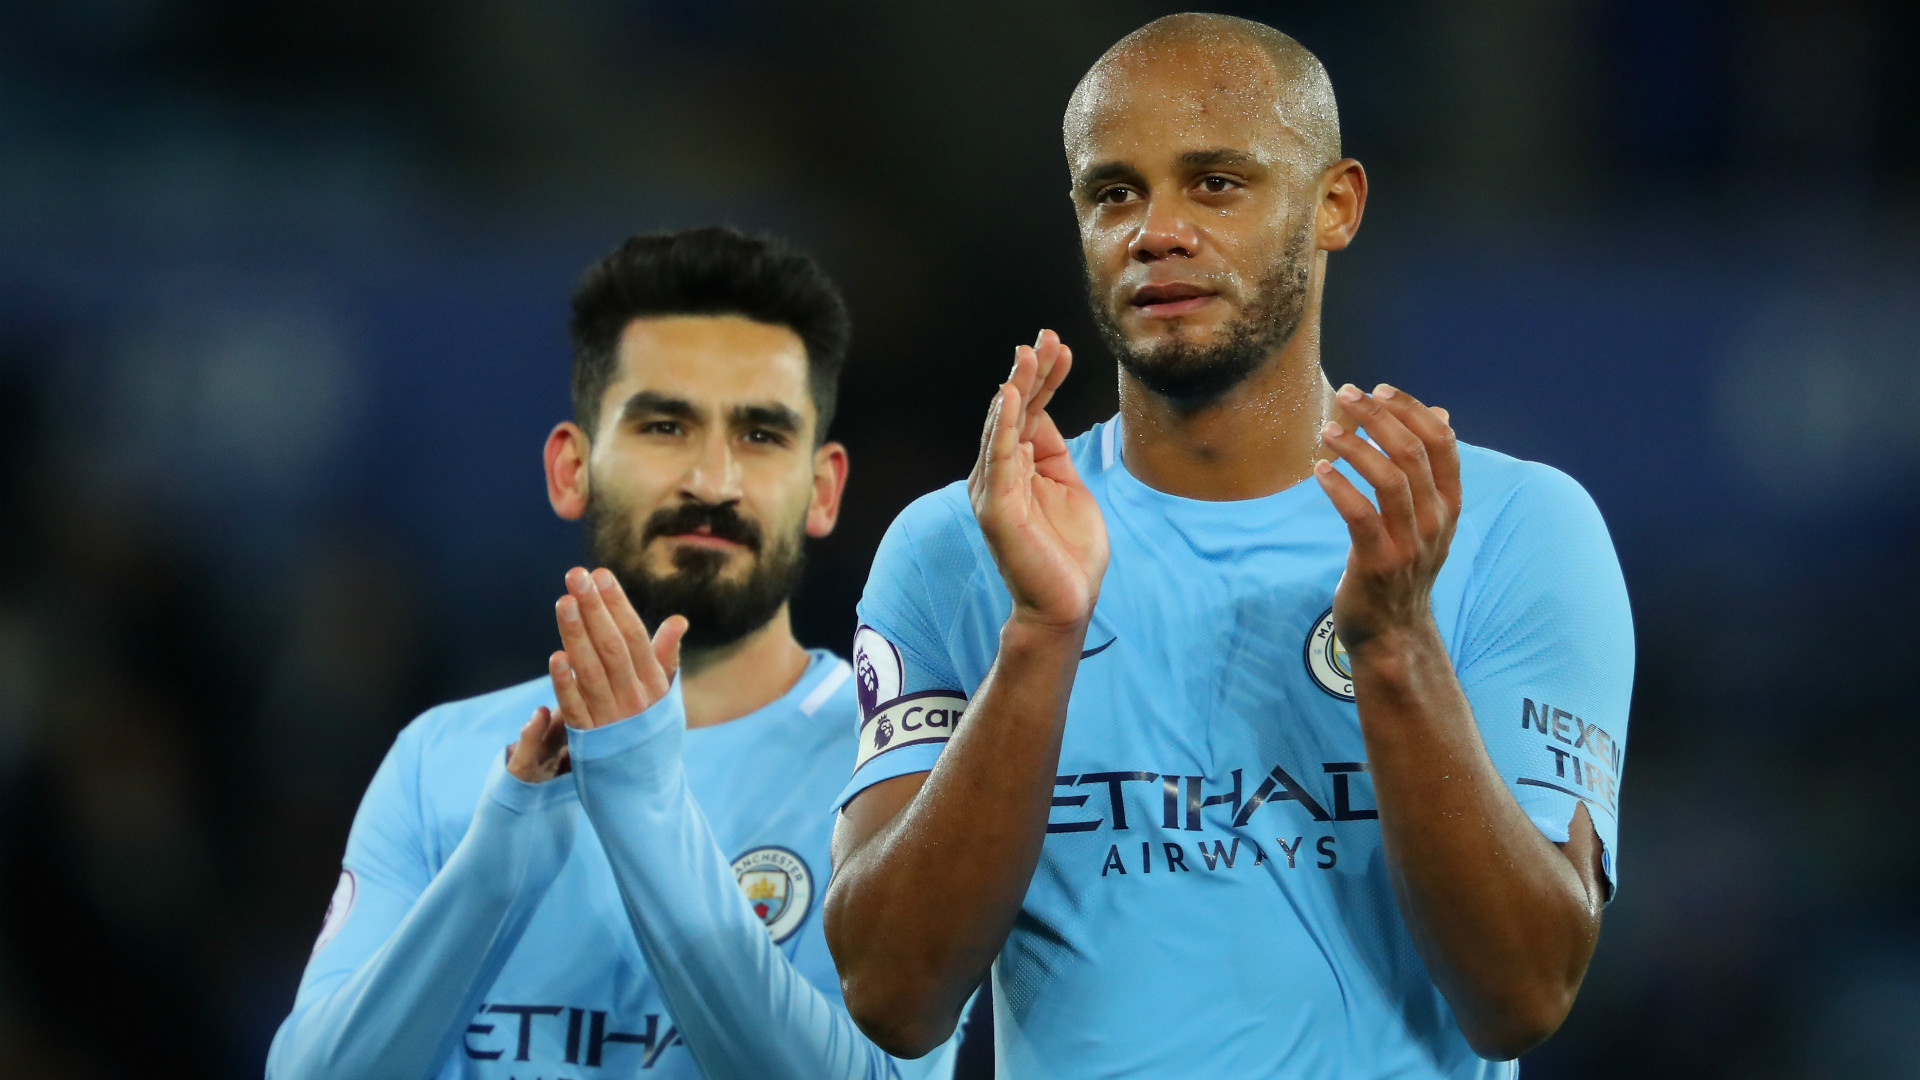 Manchester City captain Kompany ruled out for 'a short time'